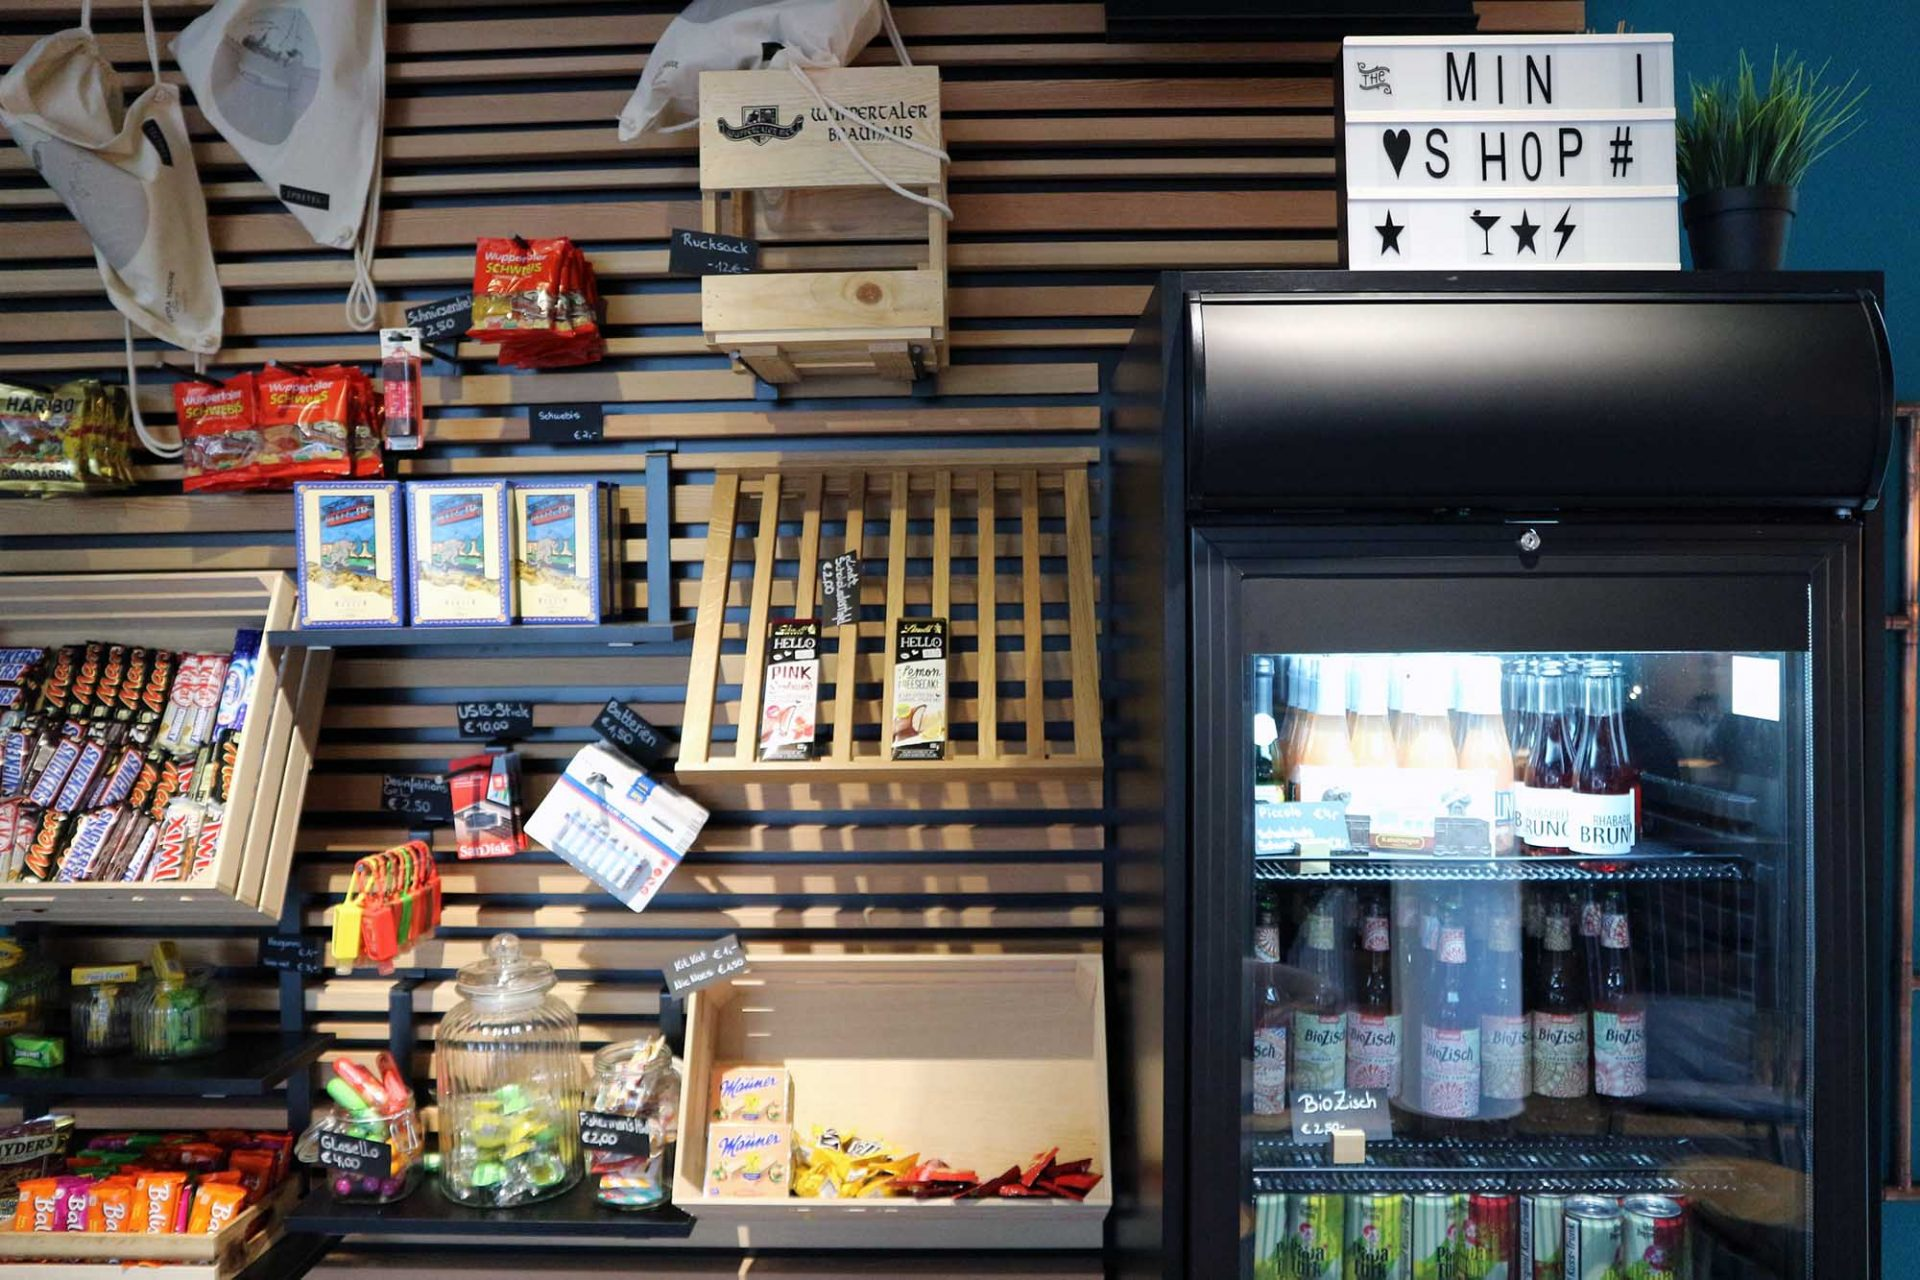 Vienna House Easy Wuppertal. Minishop statt Minibar